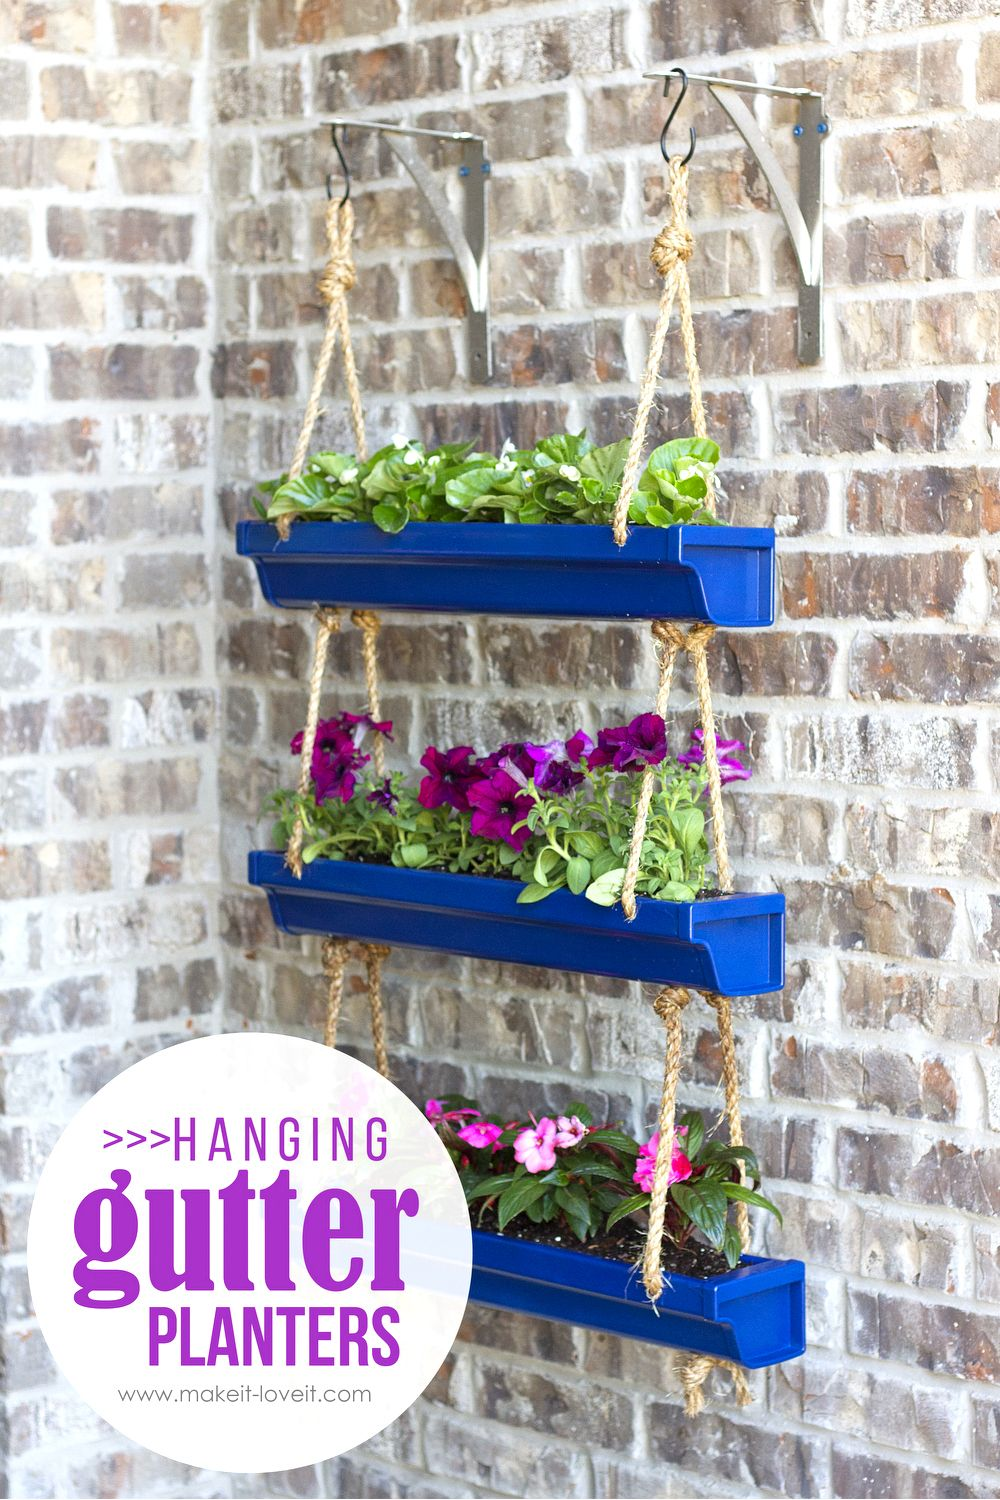 Growing strawberries in gutters diy idea - Love This Idea For Hanging Plants Diy Hanging Rain Gutter Planters